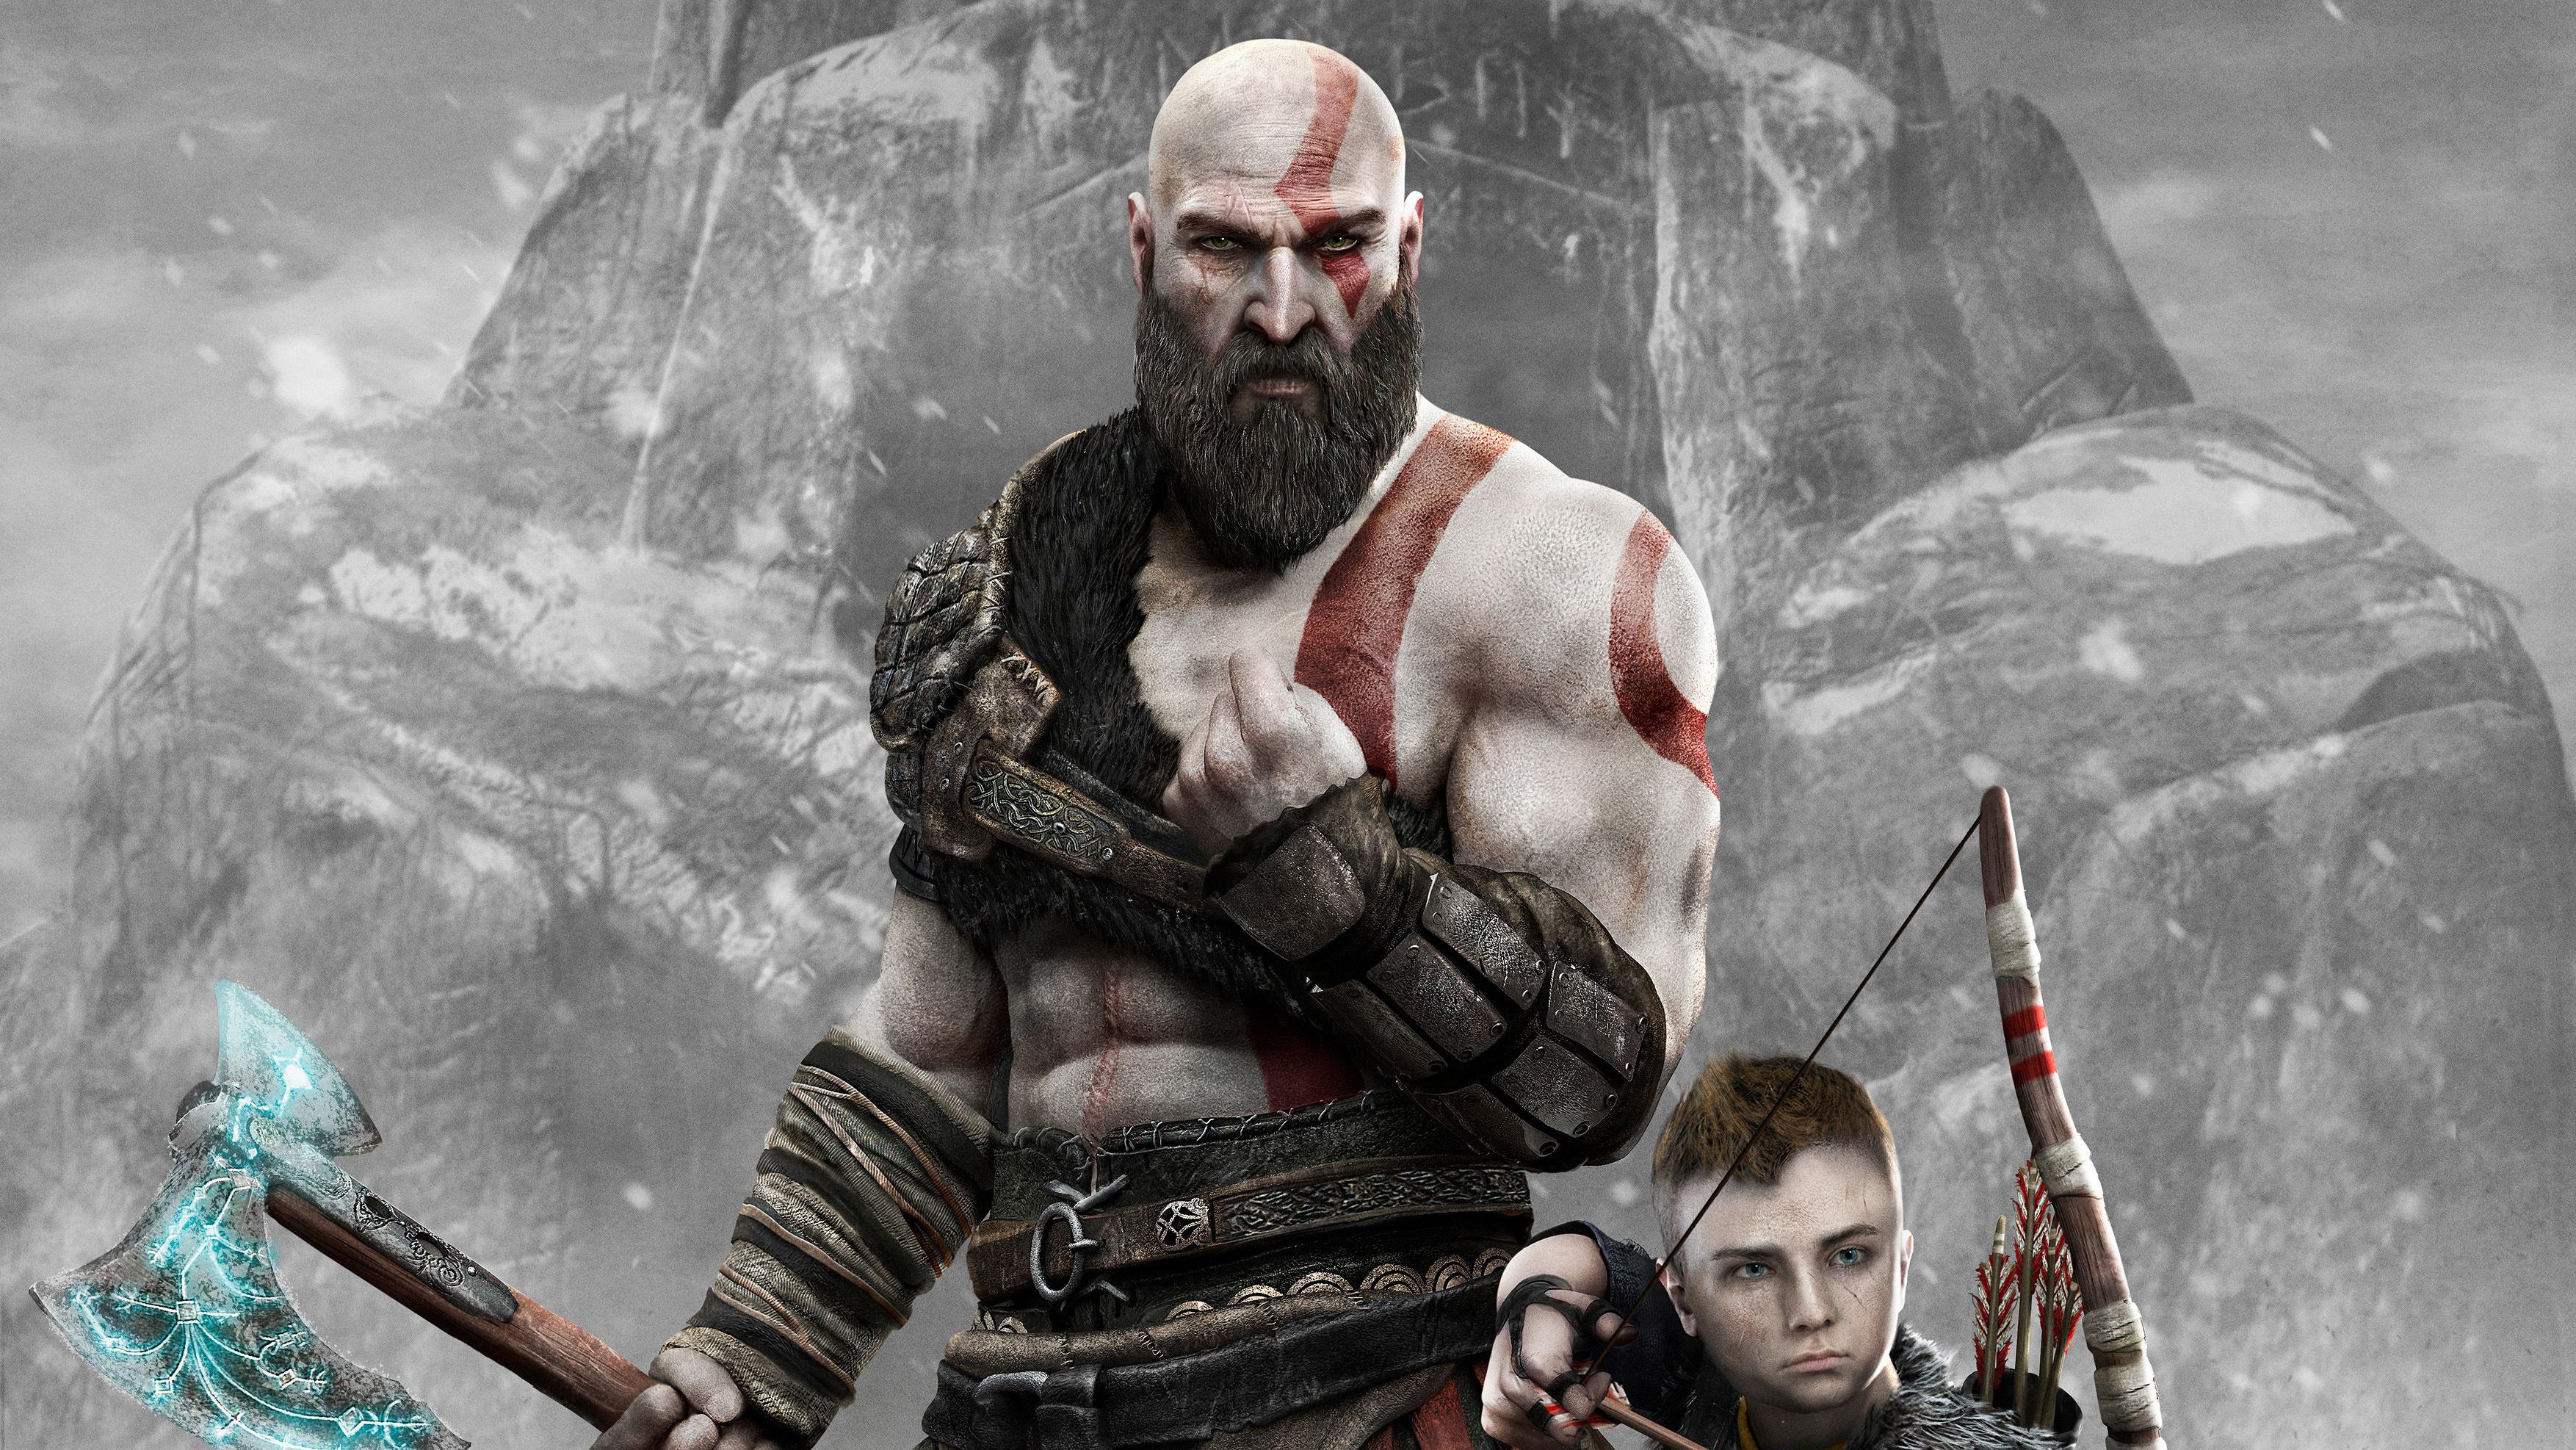 1920x1080 kratos and atreus god of war 4 4k 2018 laptop